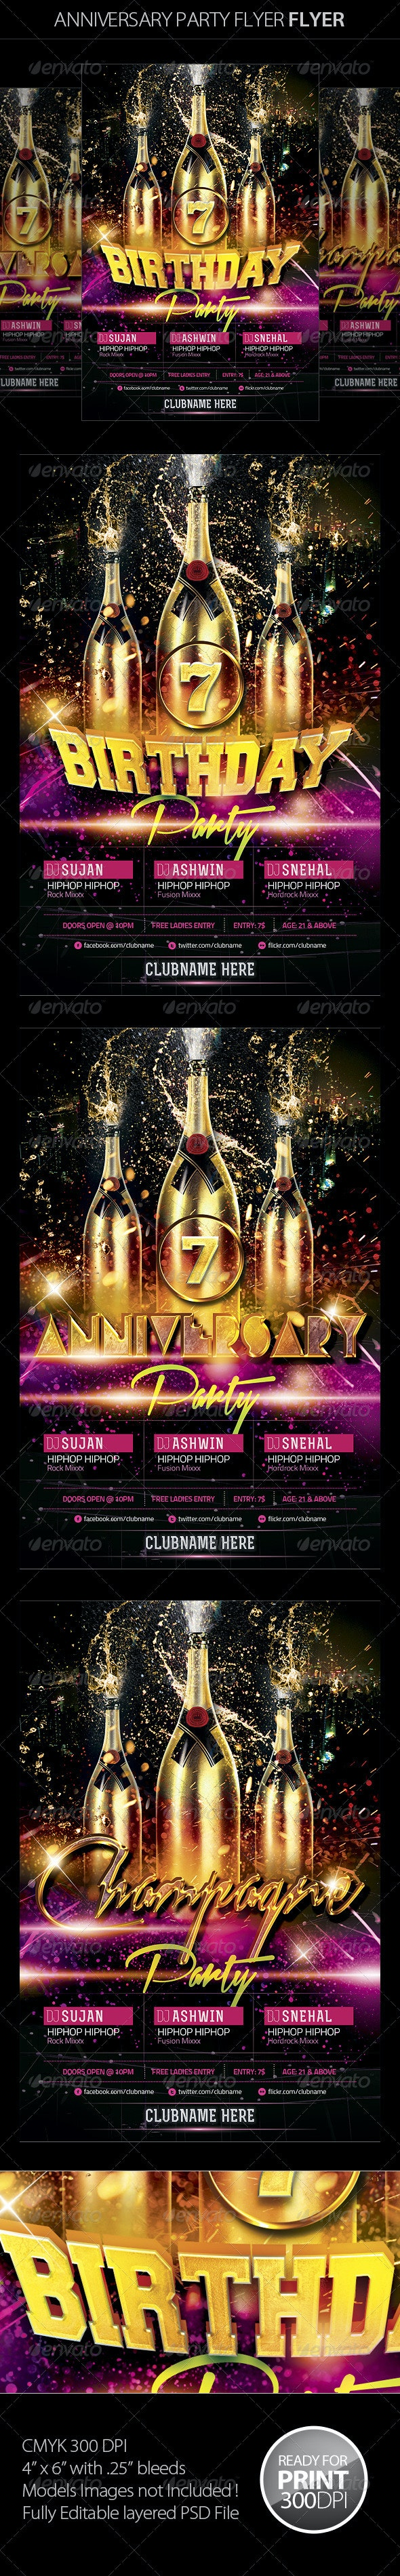 Birthday/Anniversary Party Flyer - Clubs & Parties Events